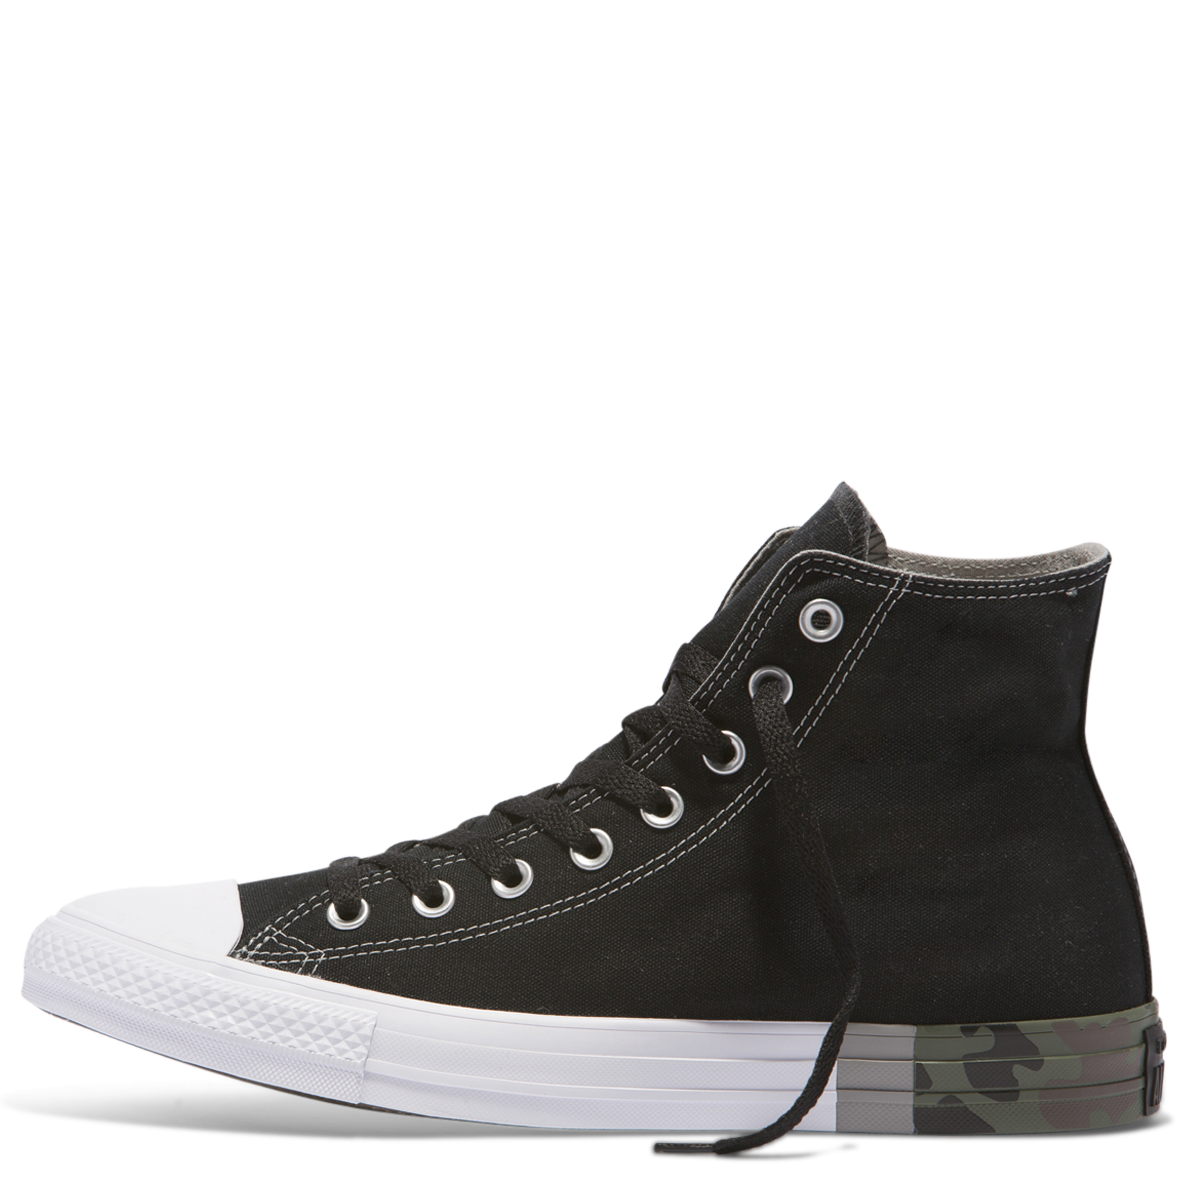 3bdf0ebd37b CHUCK TAYLOR ALL STAR TRI BLOCK MIDSOLE HI TOP - Mens -Footwear ...